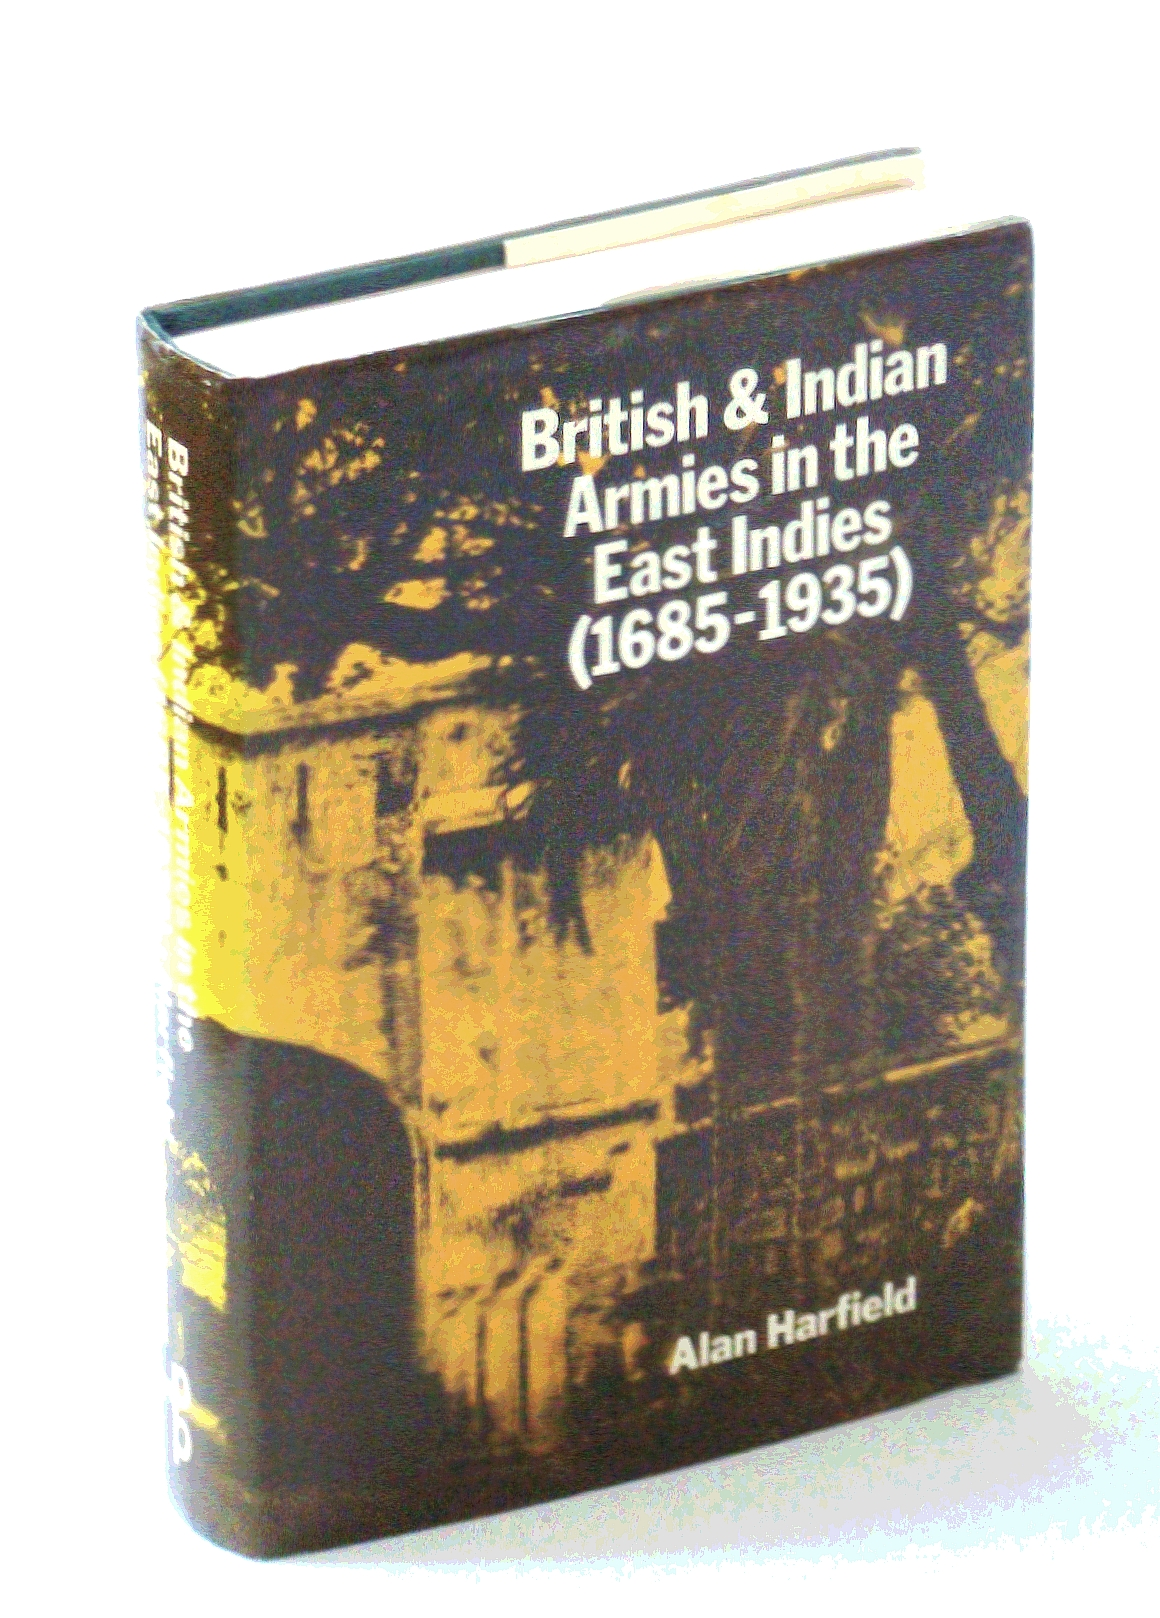 British & Indian armies in the East Indies, 1685-1935